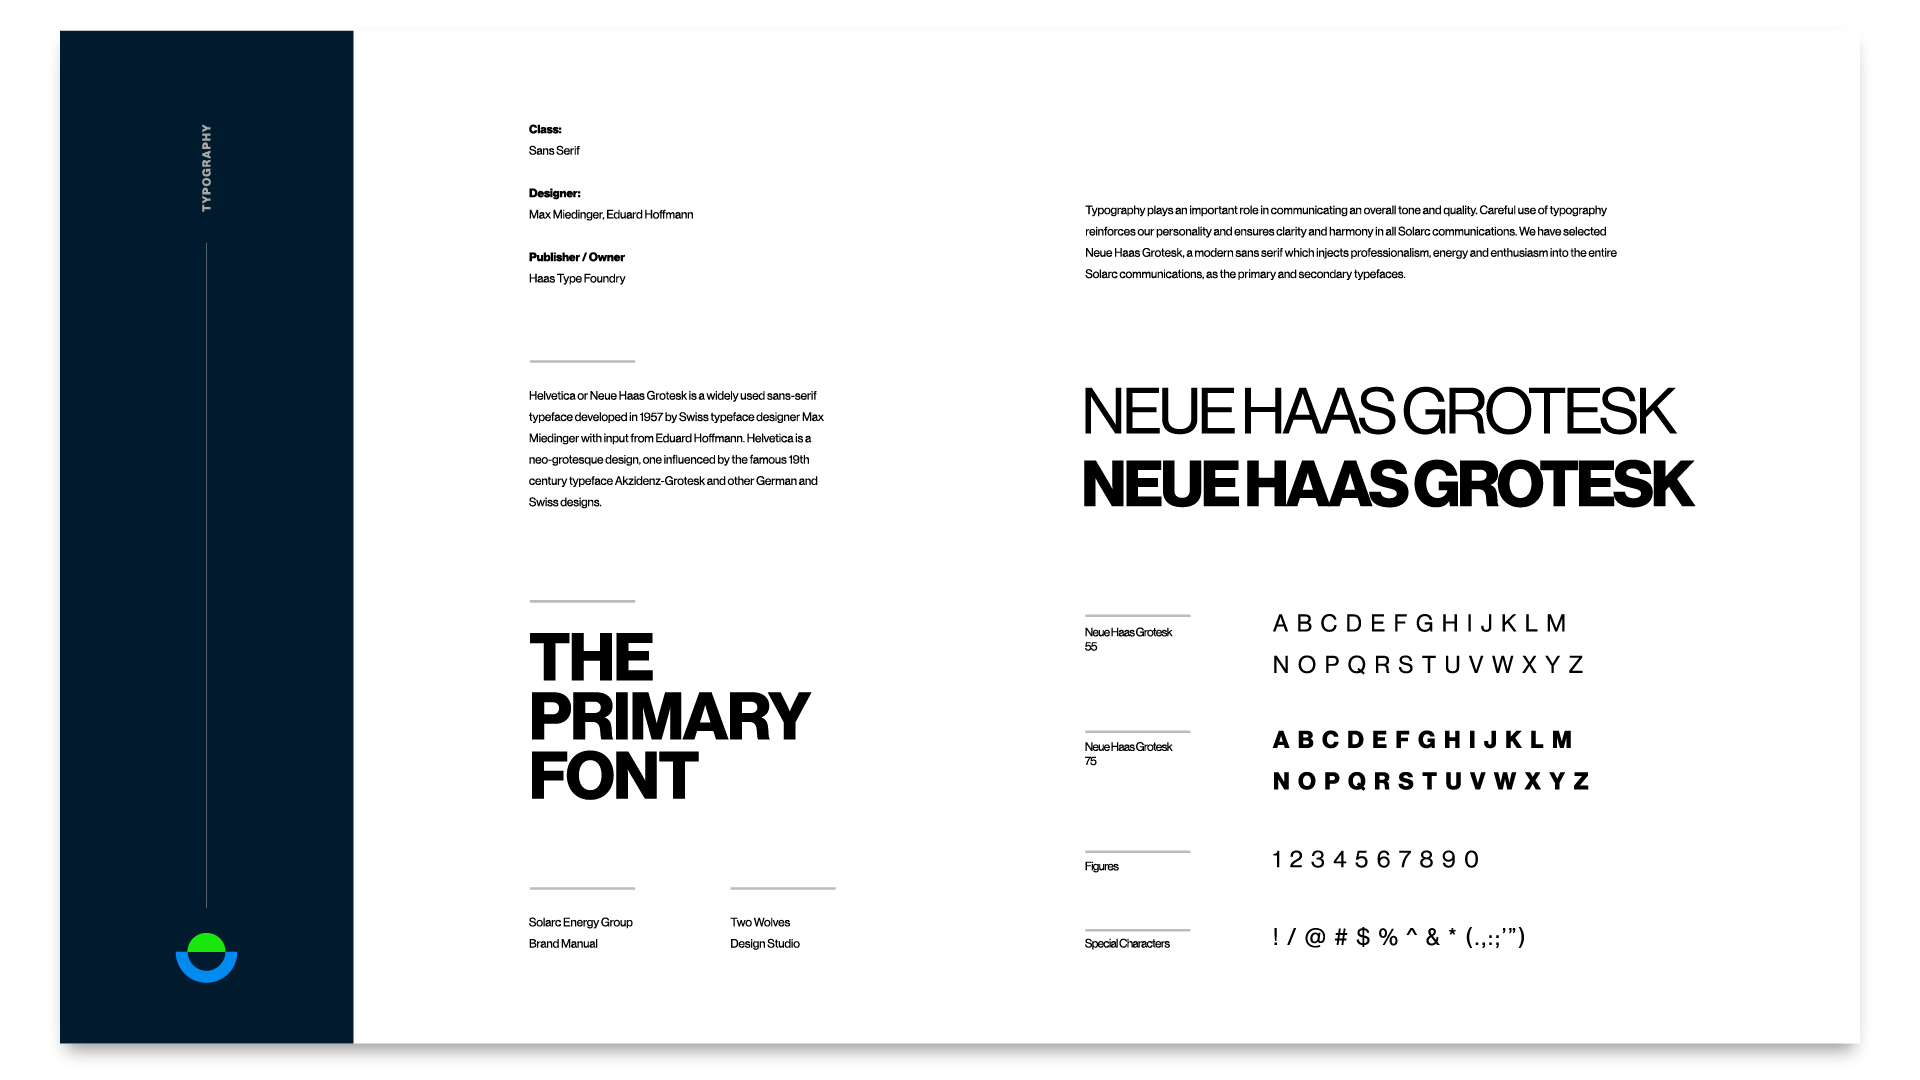 a typography example from a branding package